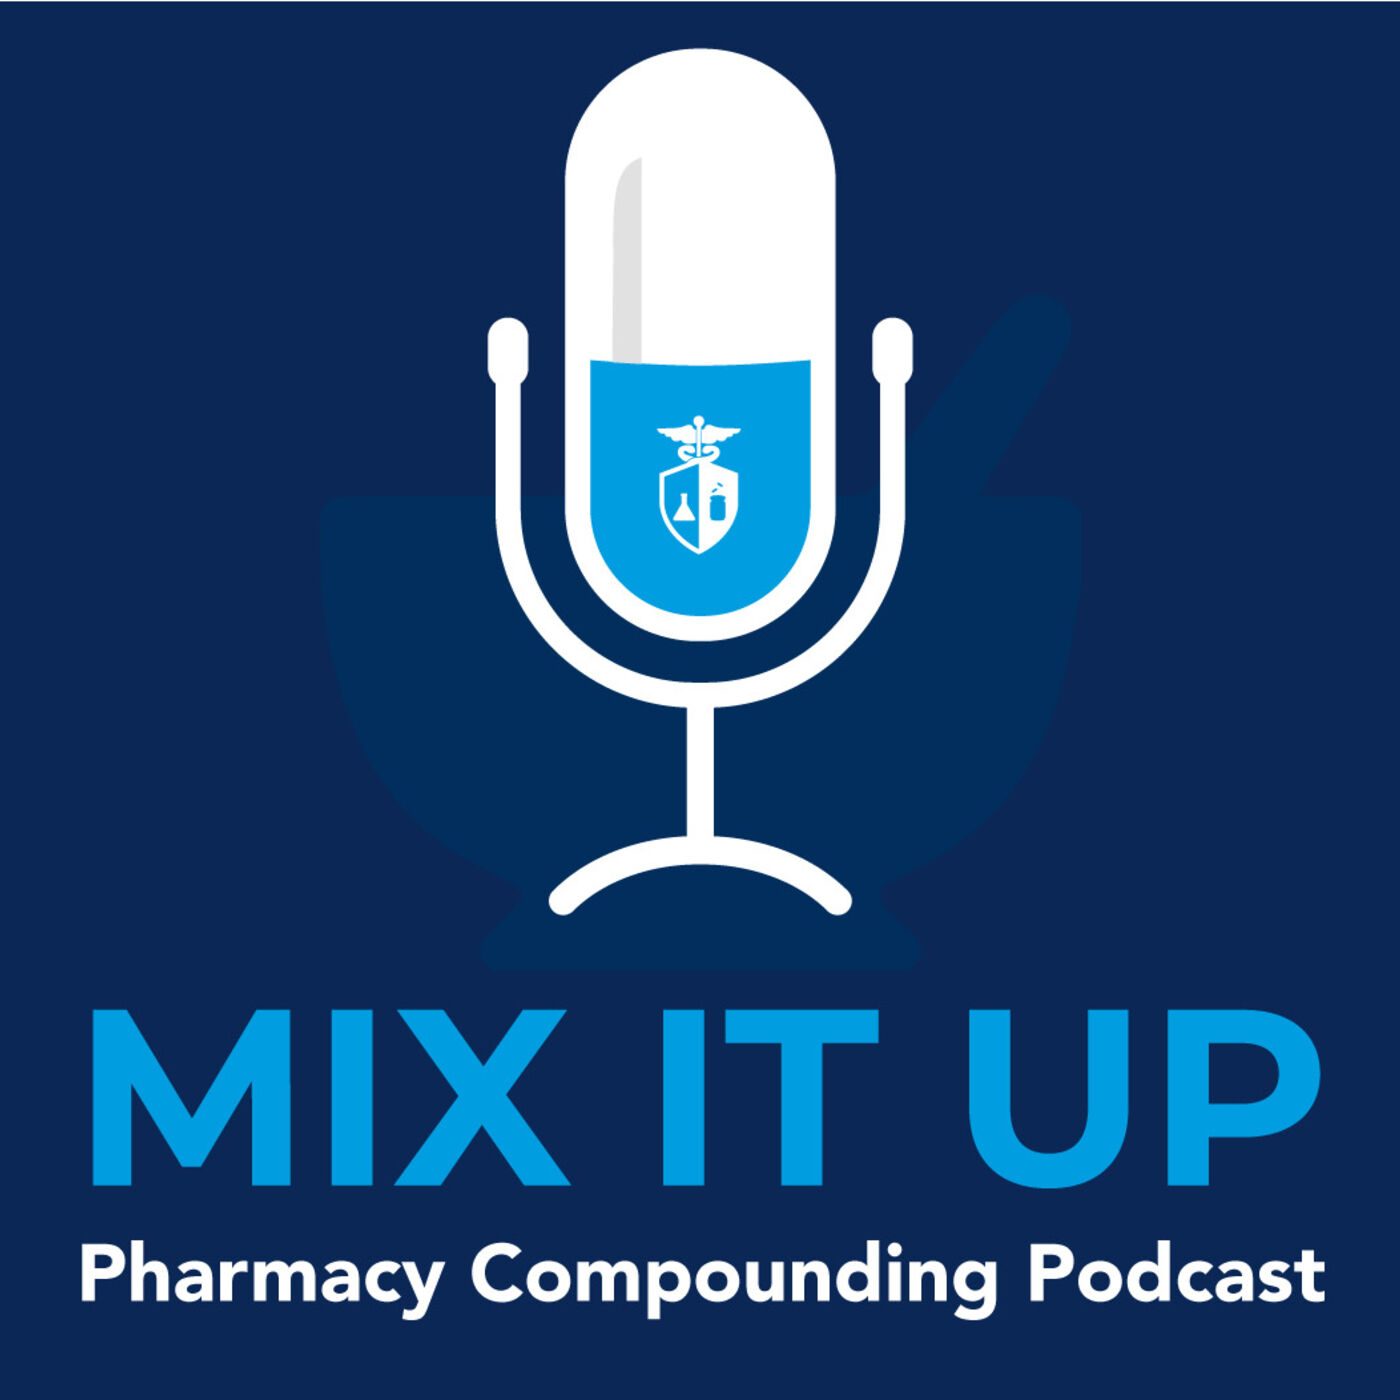 Episode 1.9 - A Candid Talk About Men's Health & Erectile Dysfunction: Interview with Shawn Hodges, PharmD